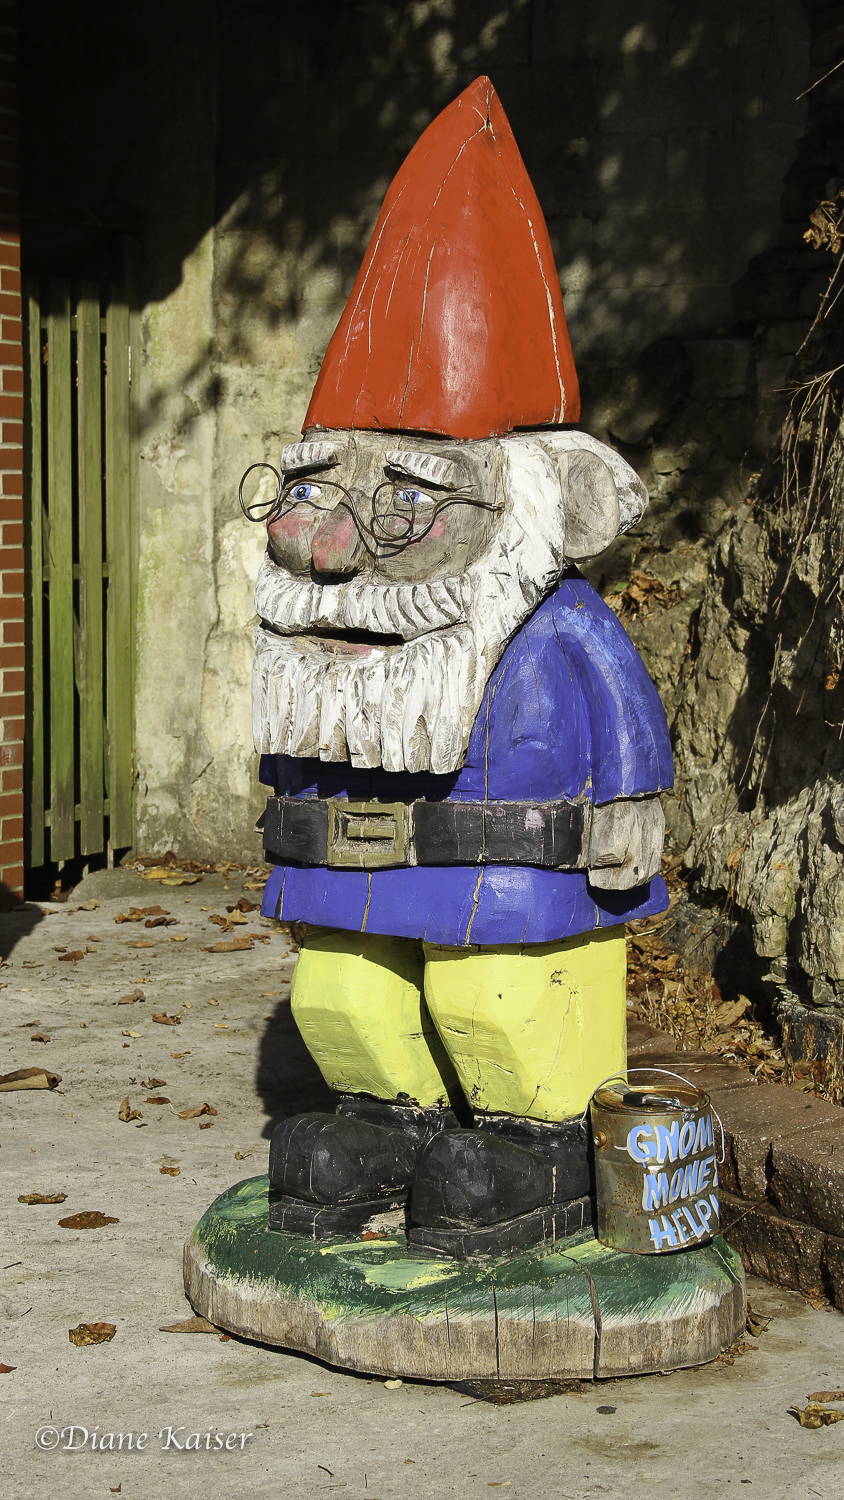 There were several of these gnomes around town. Some had money in their can!